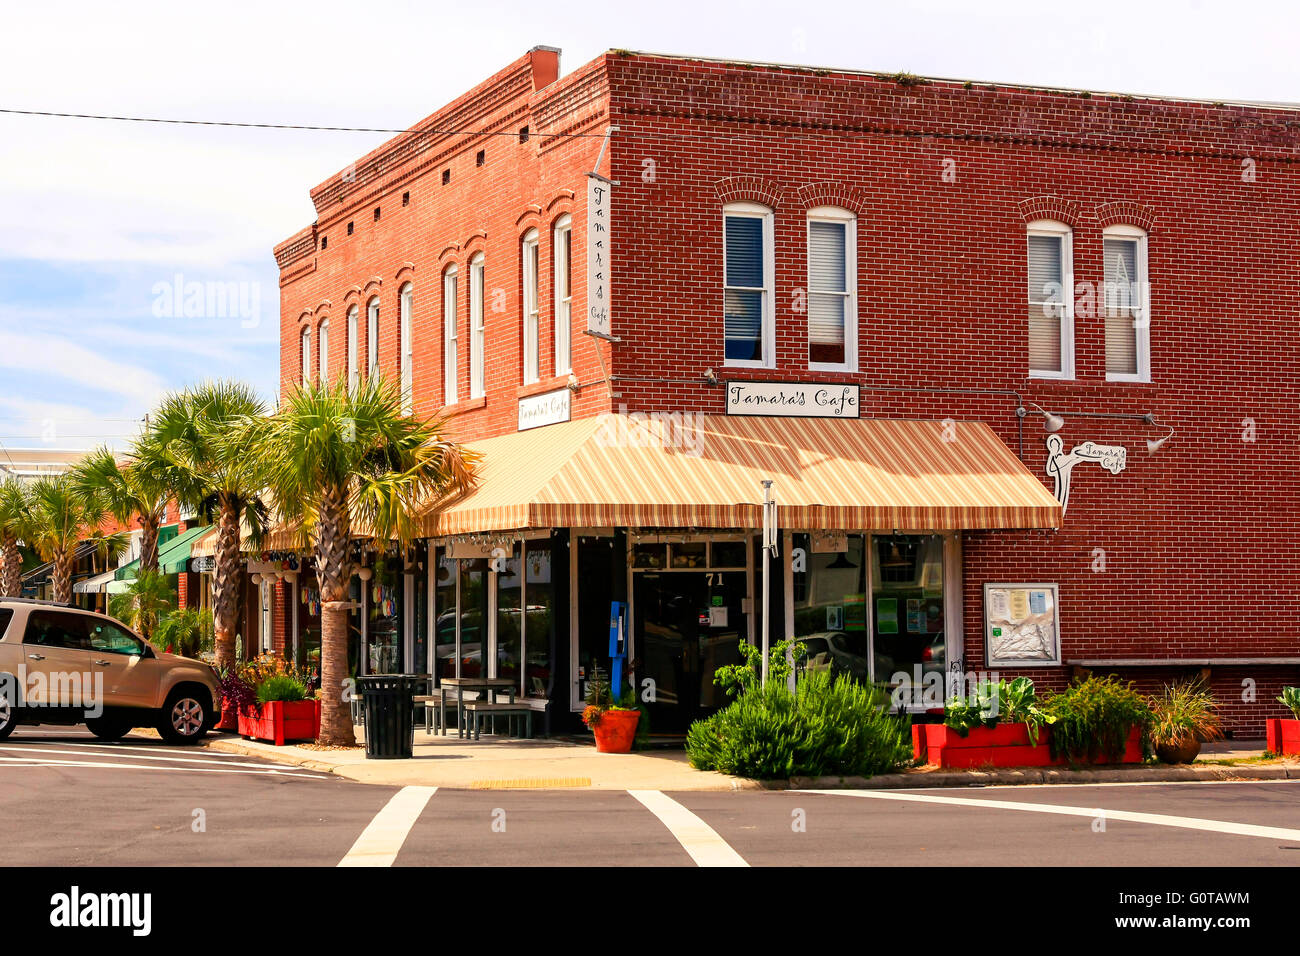 Tamara's Cafe in downtown Apalachicola city on the Florida panhandle. - Stock Image